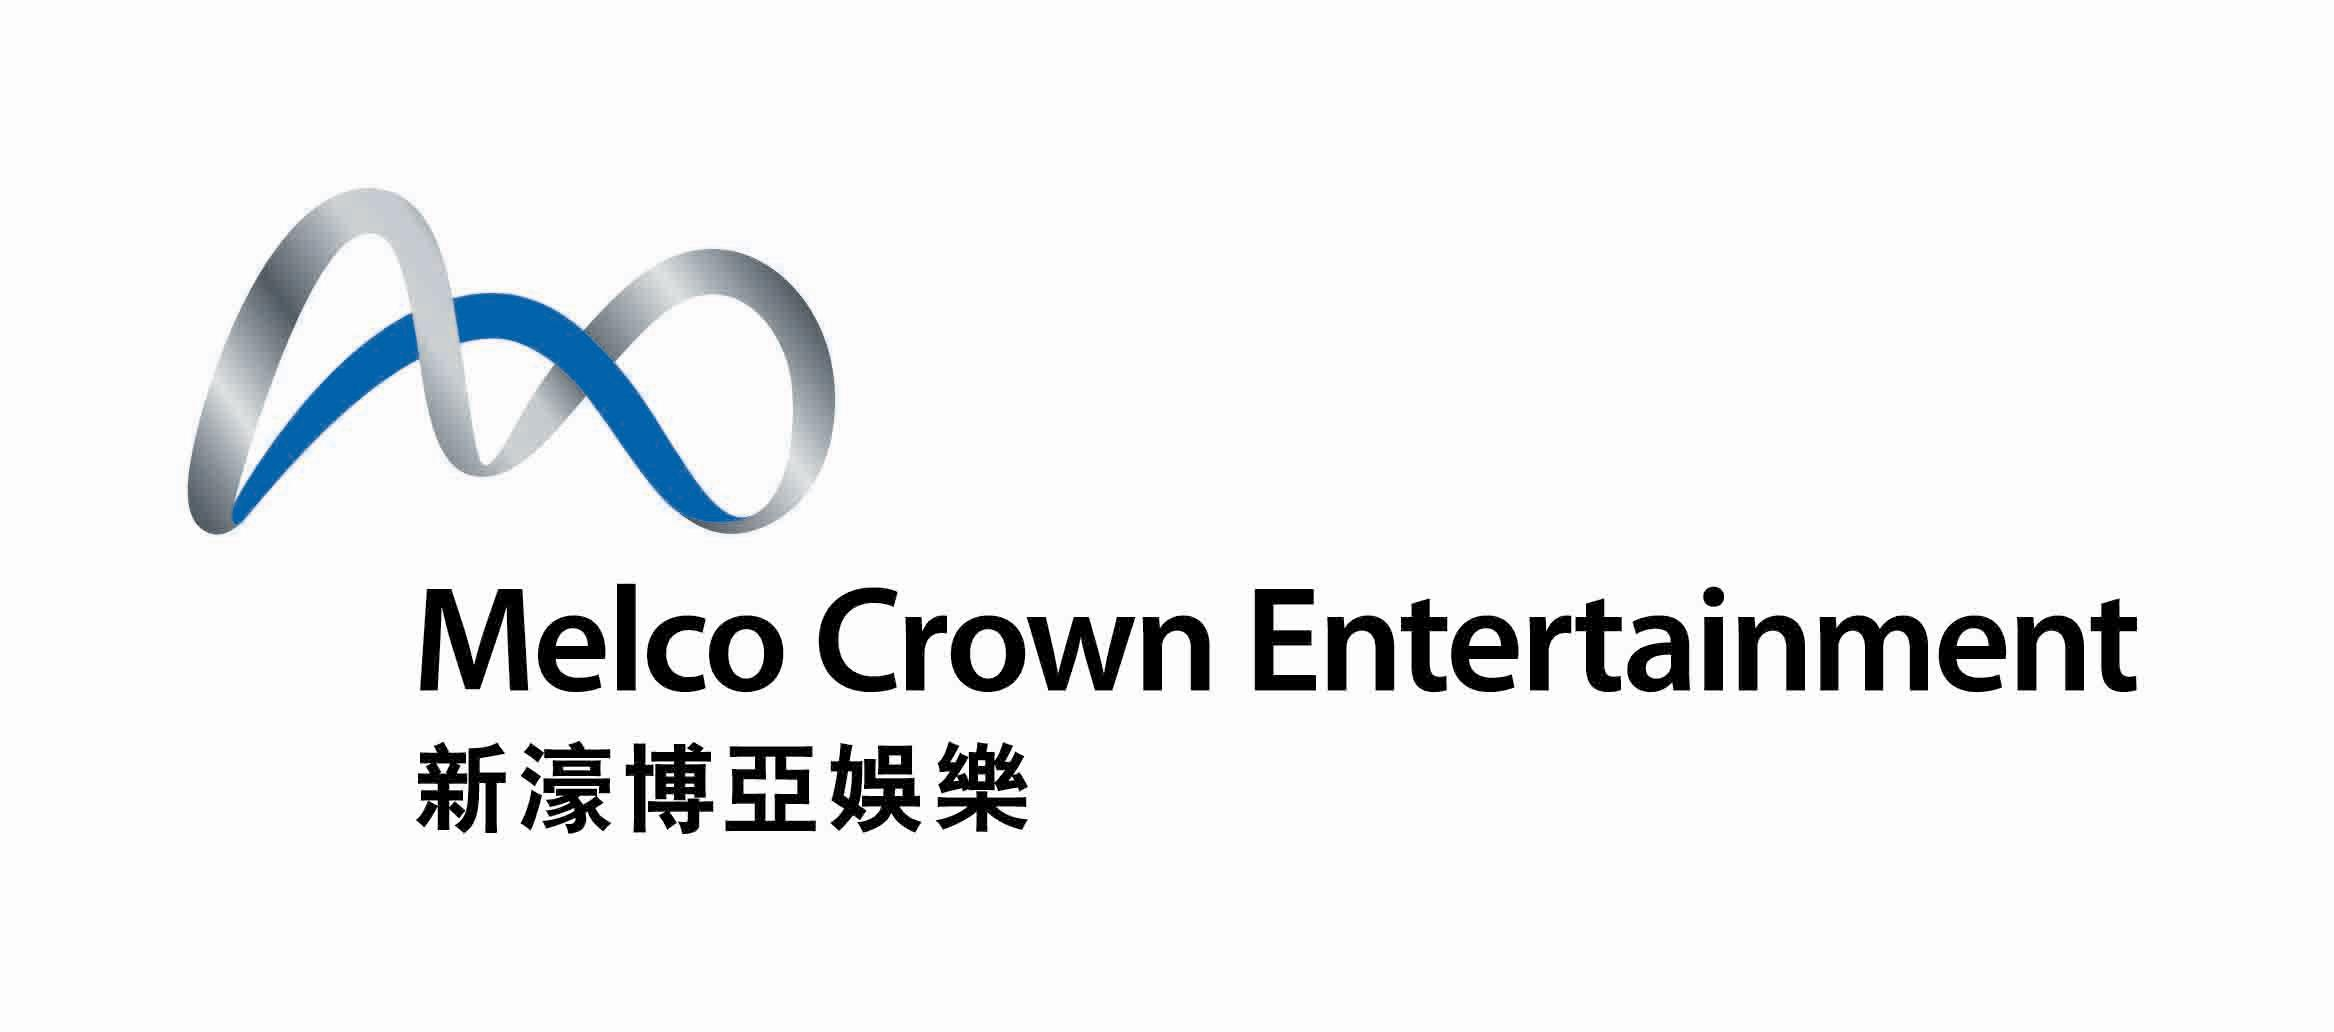 Melco Crown Entertainment Limited - NASDAQ:MPEL - News and Analysis